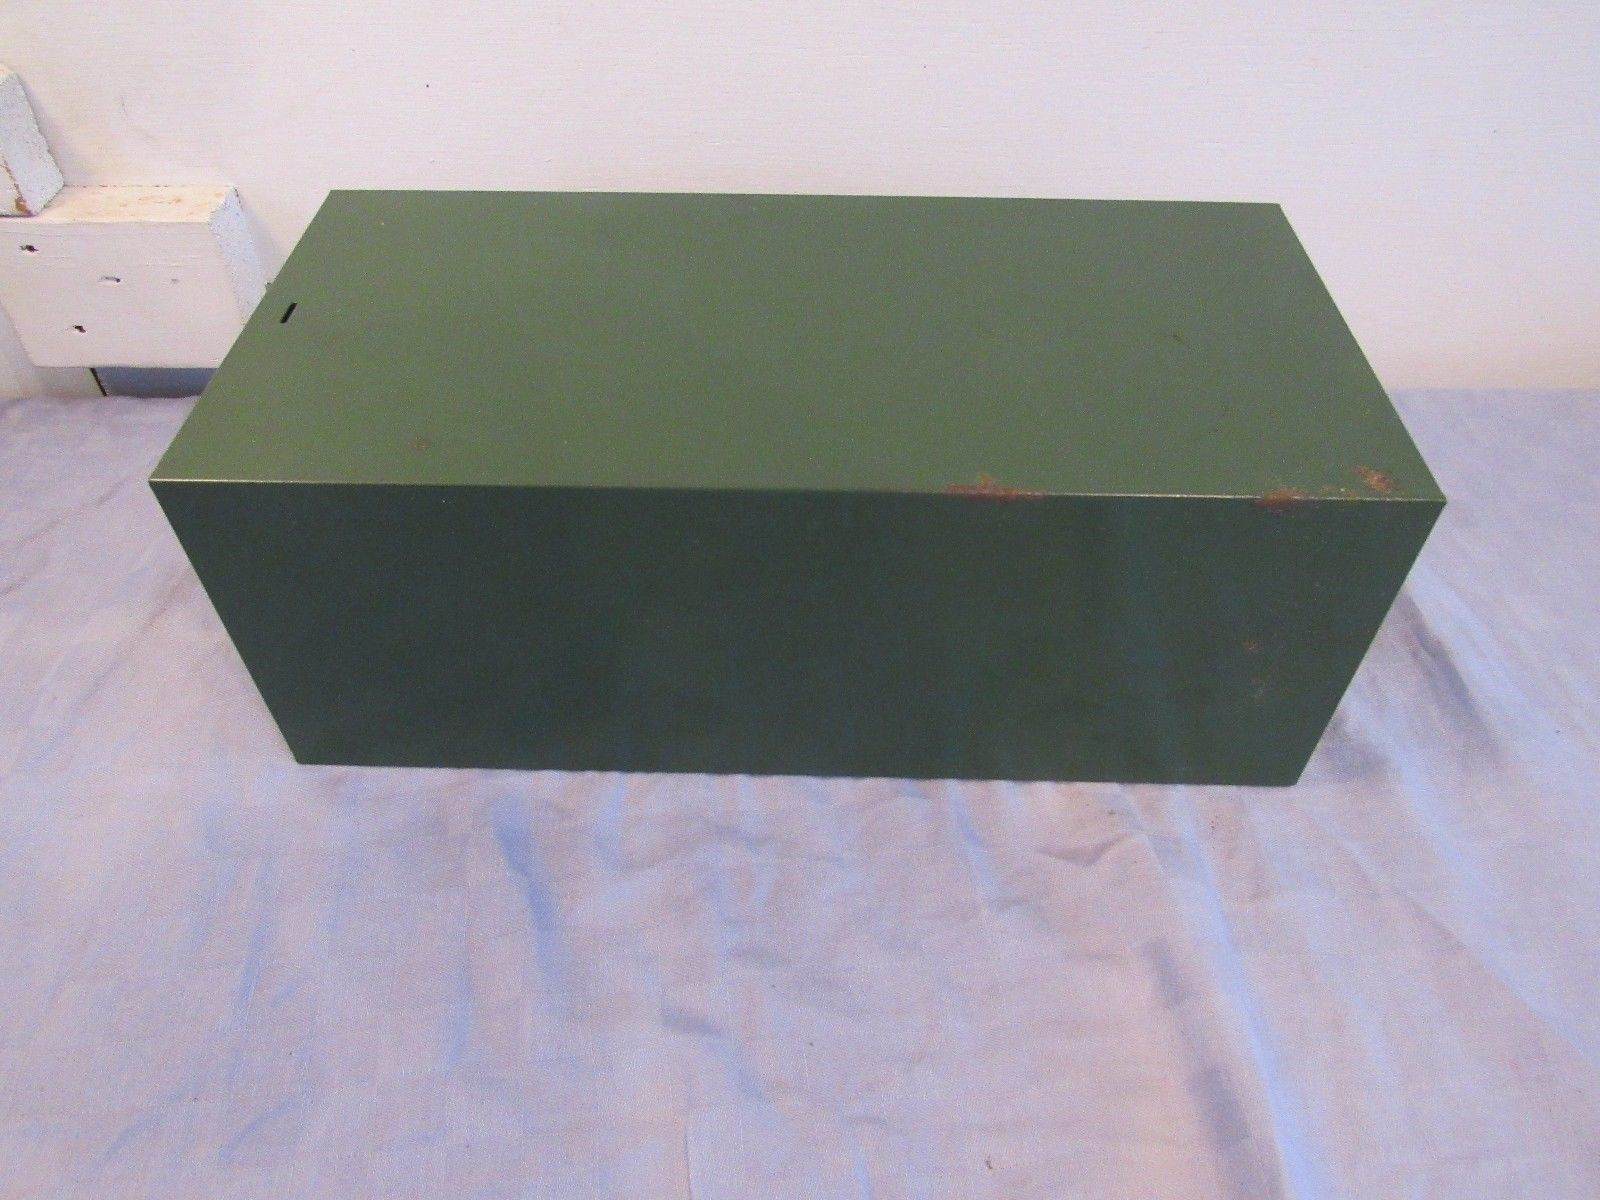 Vtg Green Cole-Steel Metal 3x5 Index Card File Recipe Box Drawer Industrial Lock